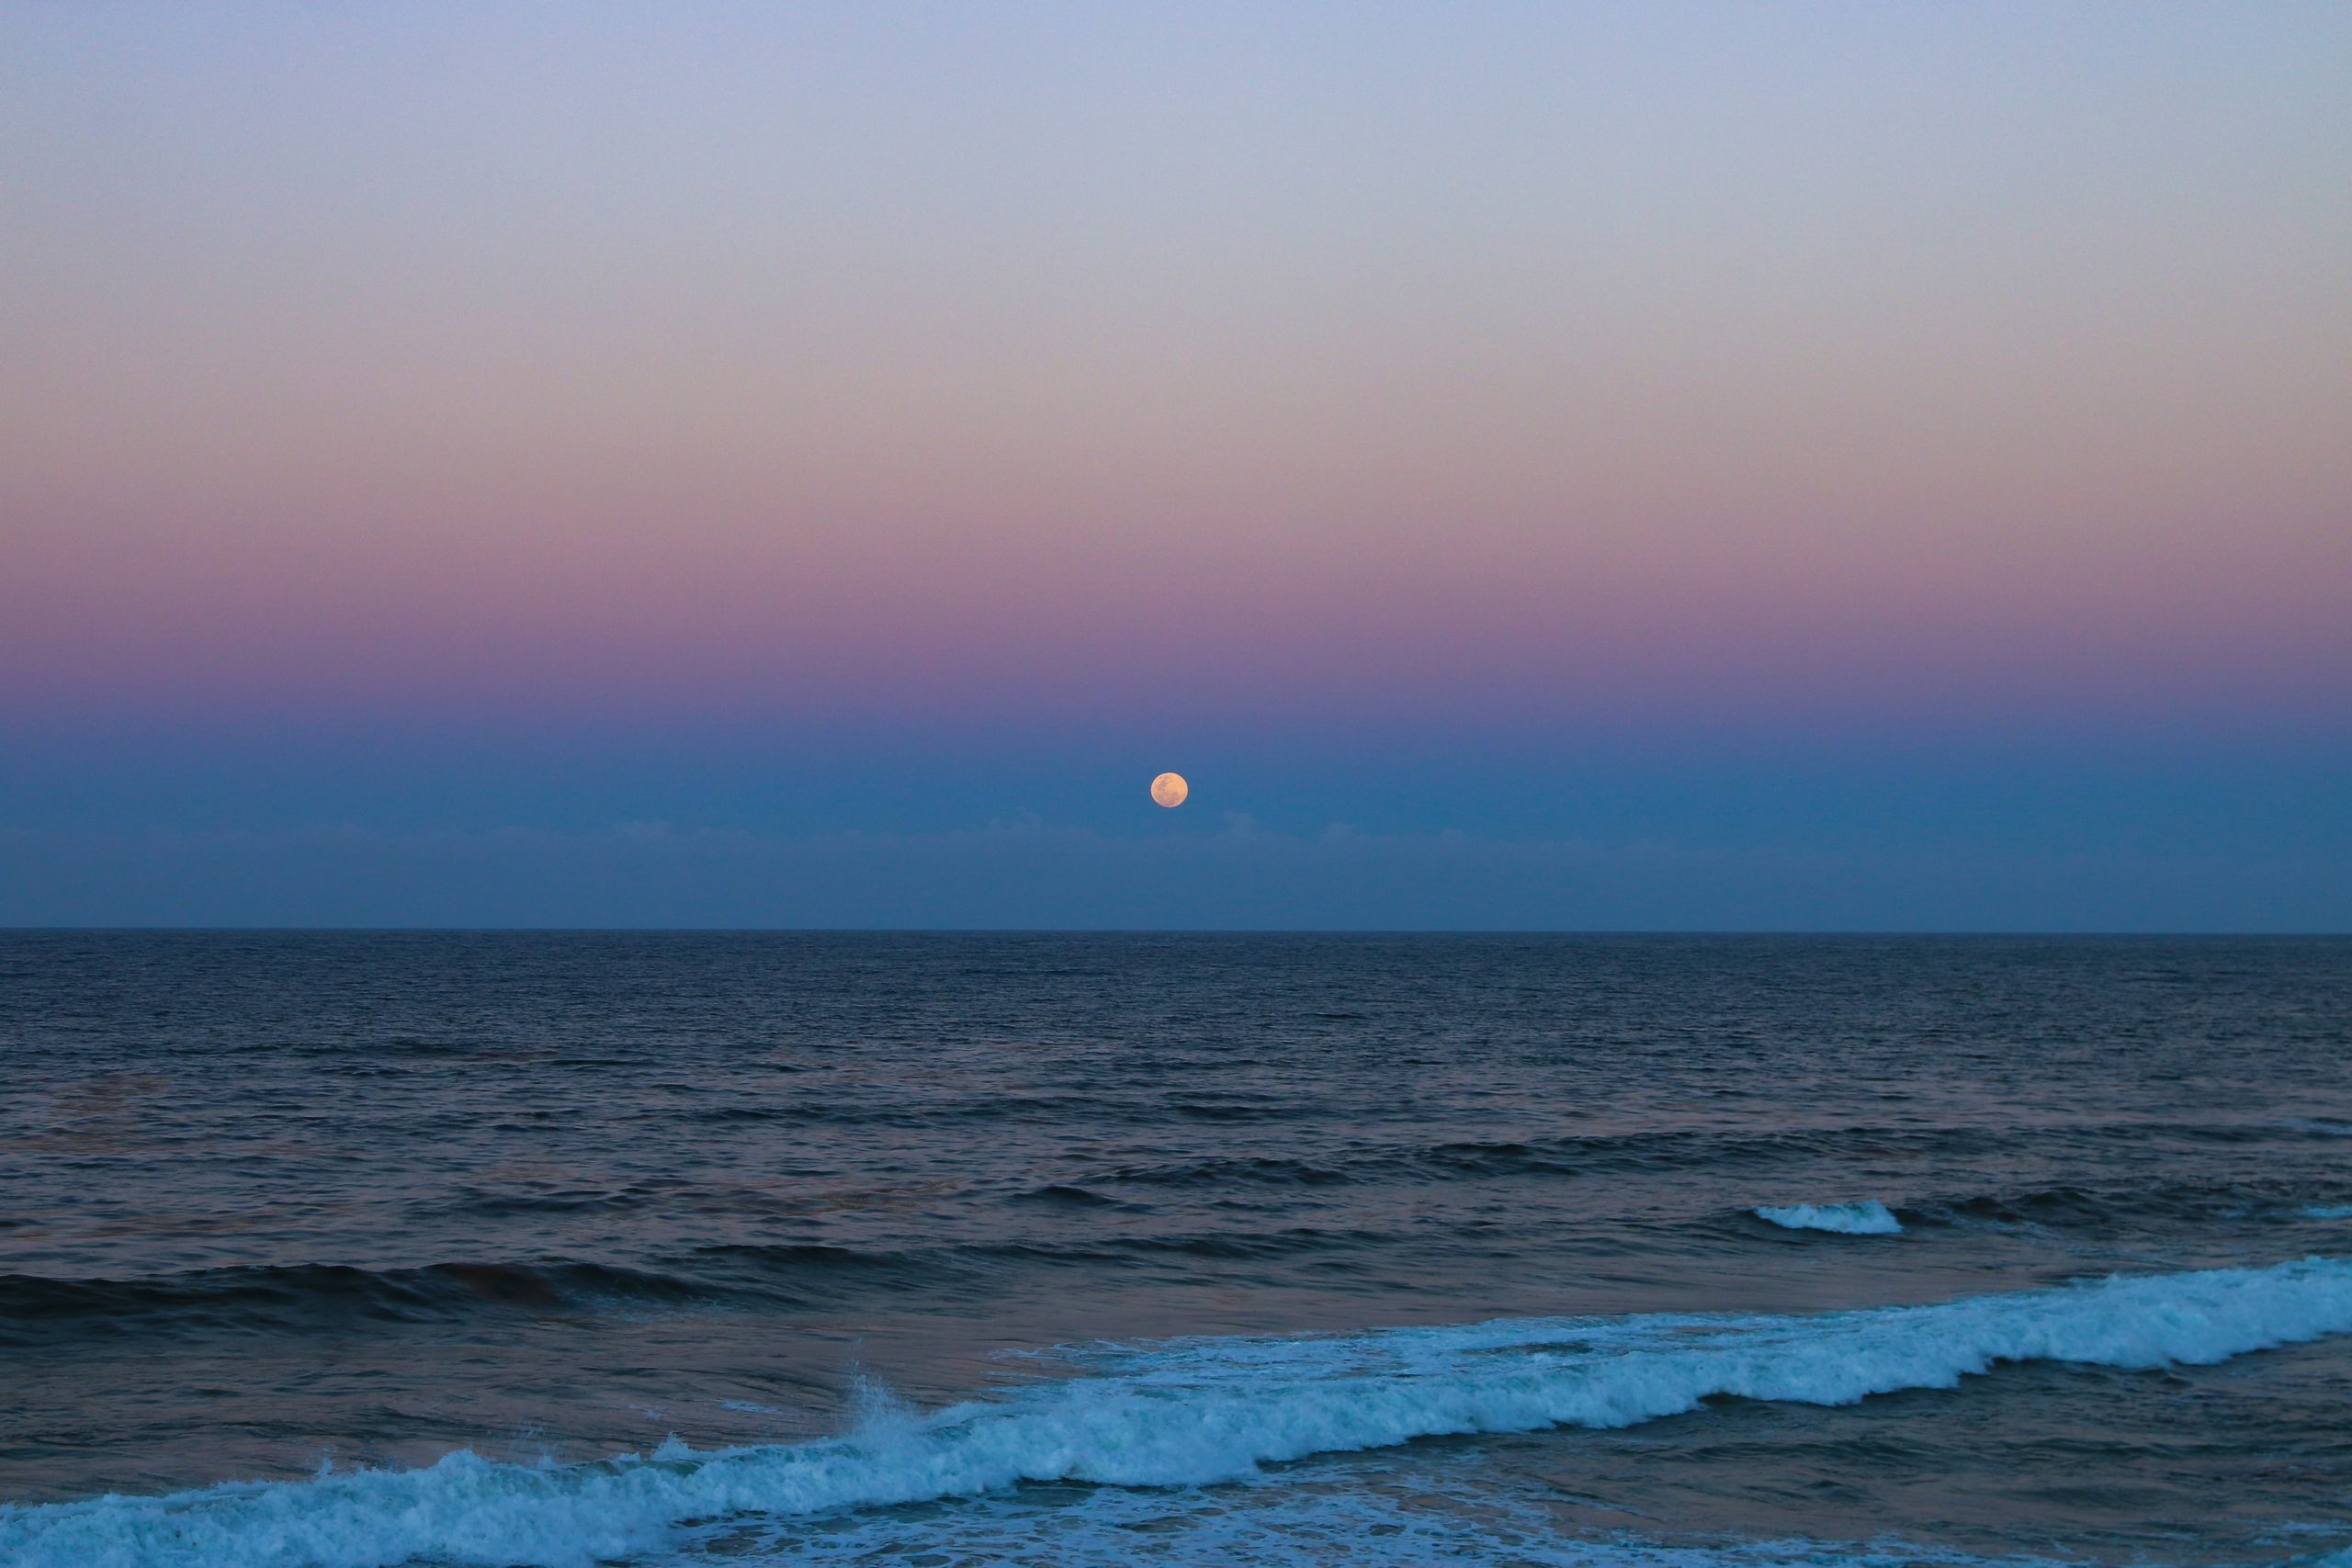 Image of the sun setting over the ocean